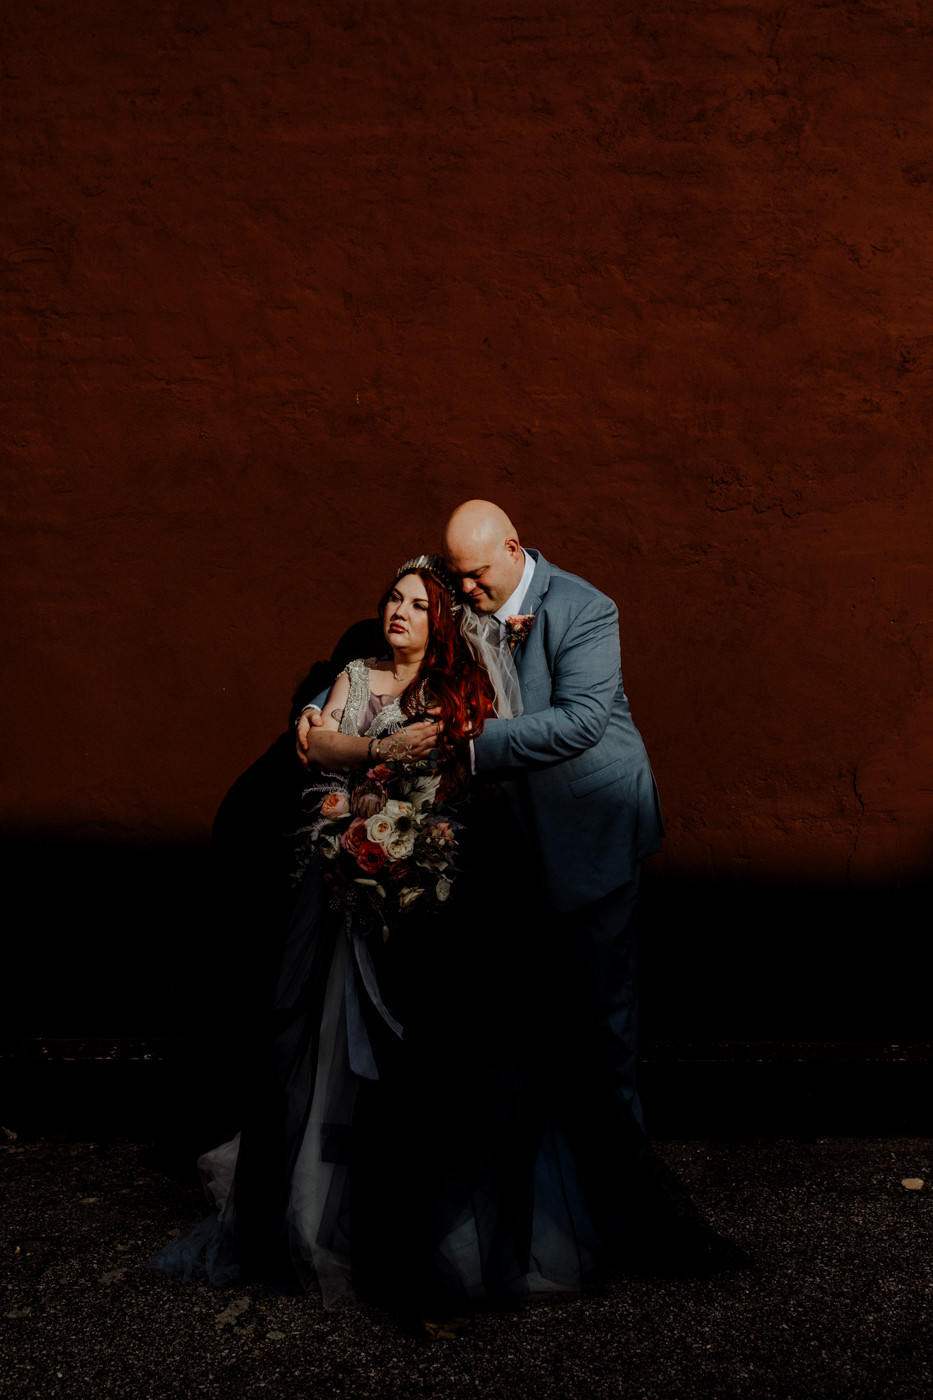 moody wedding photo taken in jackson, michigan by little blue bird photography.